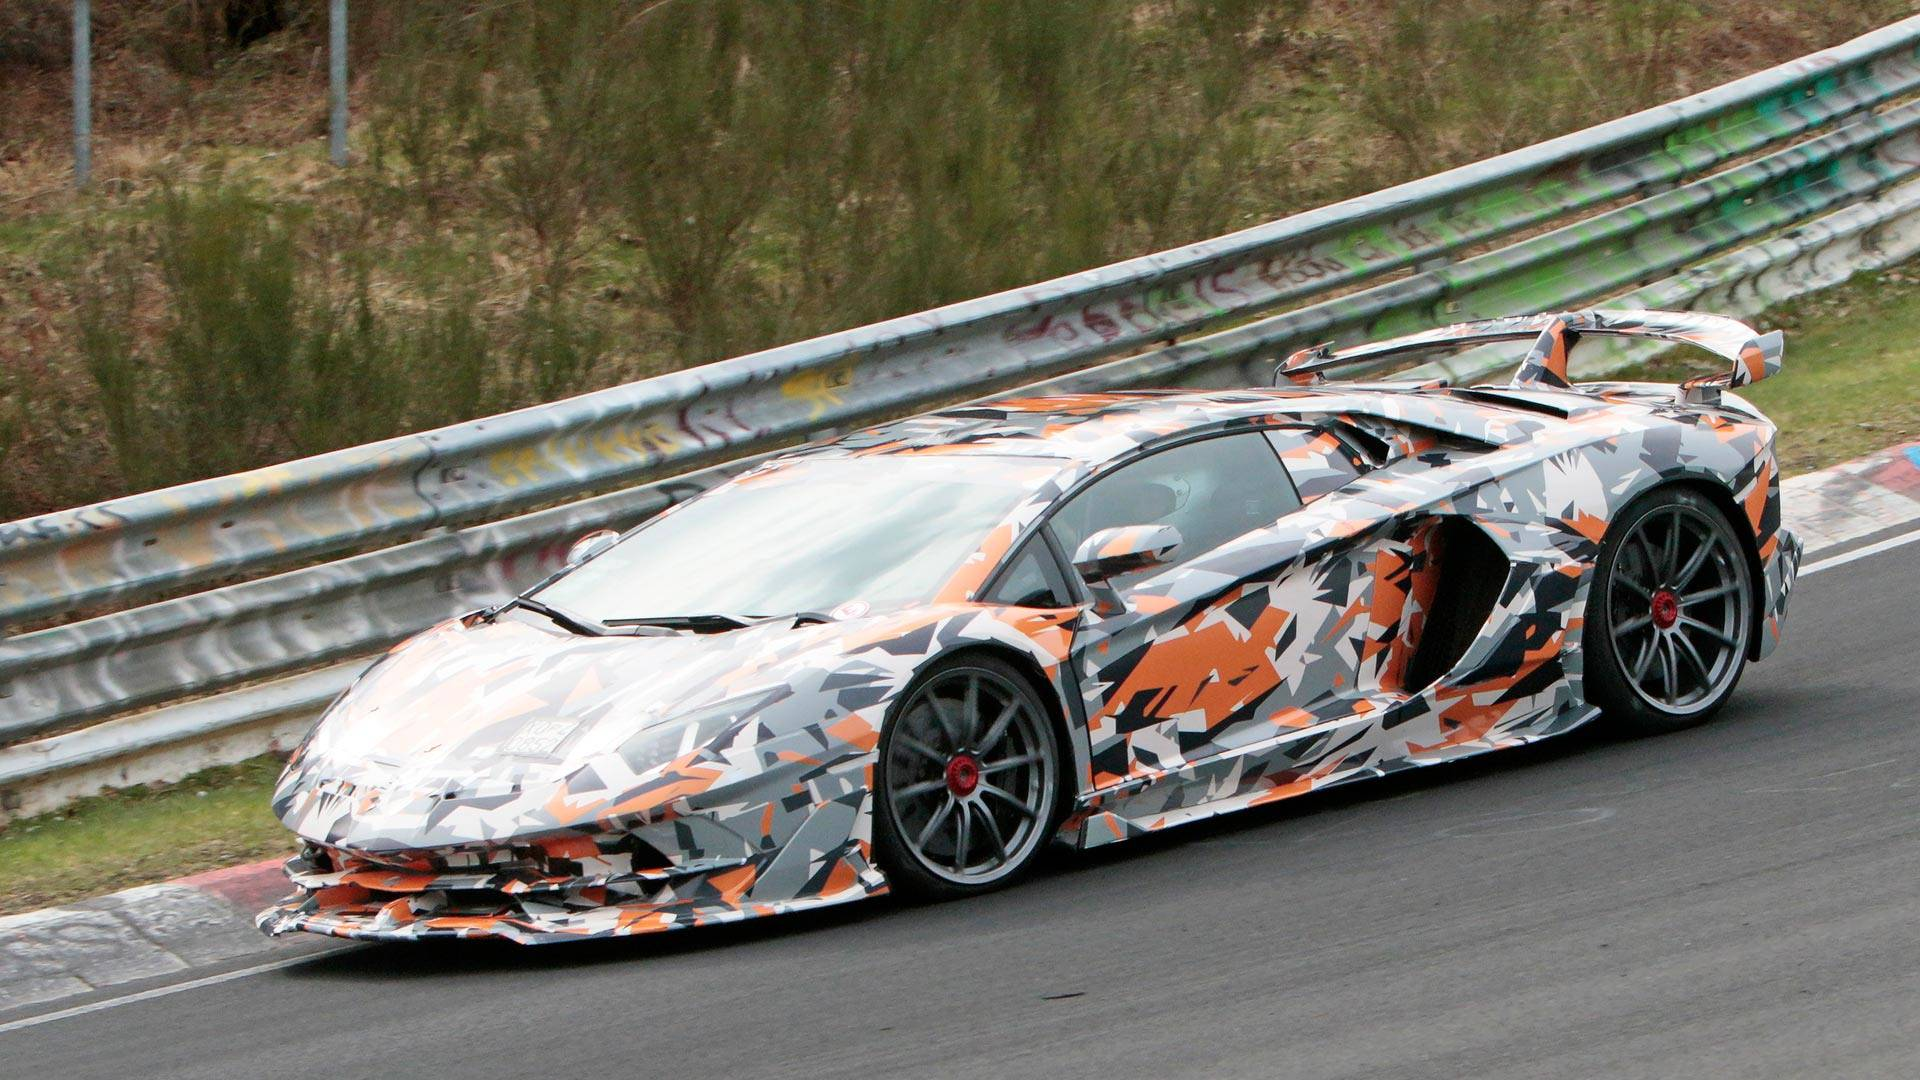 Lamborghini Aventador Svj Brags About Handling In New Teaser